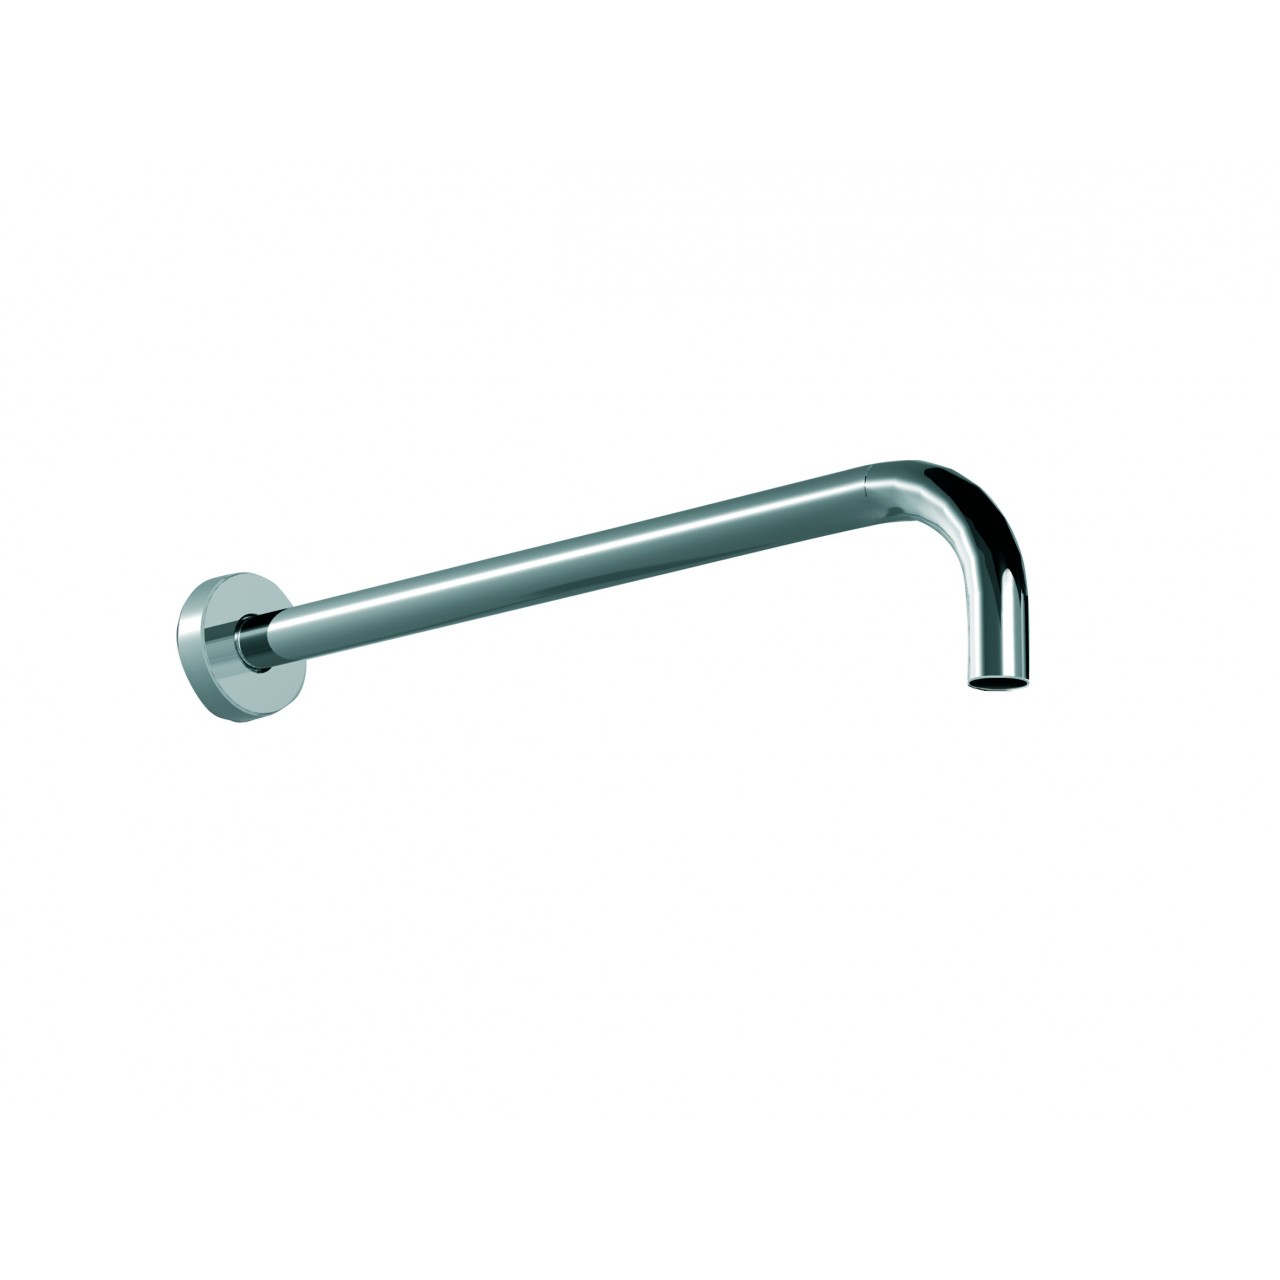 Reverso - Horizontal Shower Arm